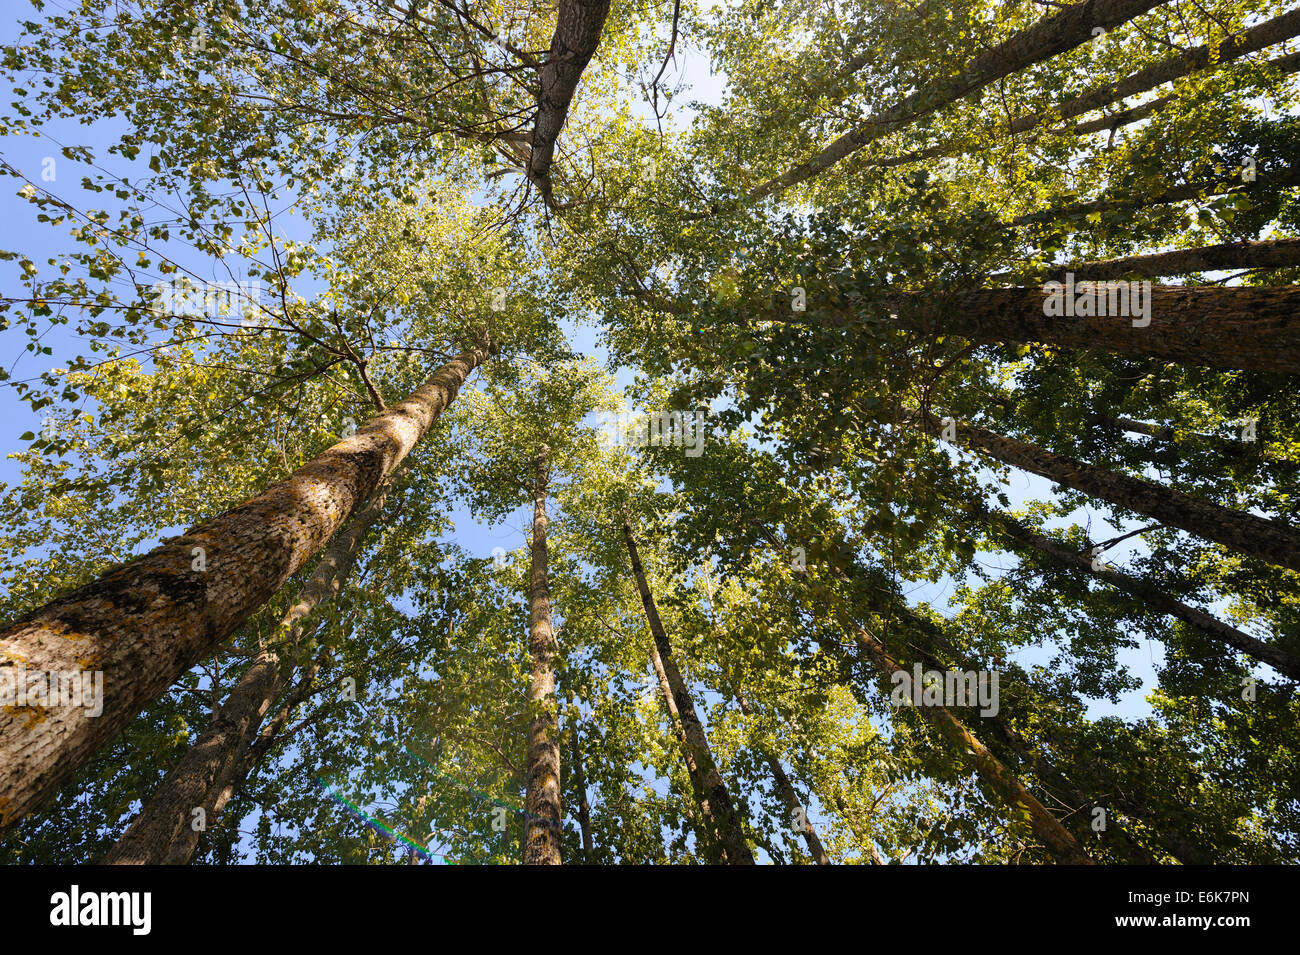 Forest trees from below - Stock Image